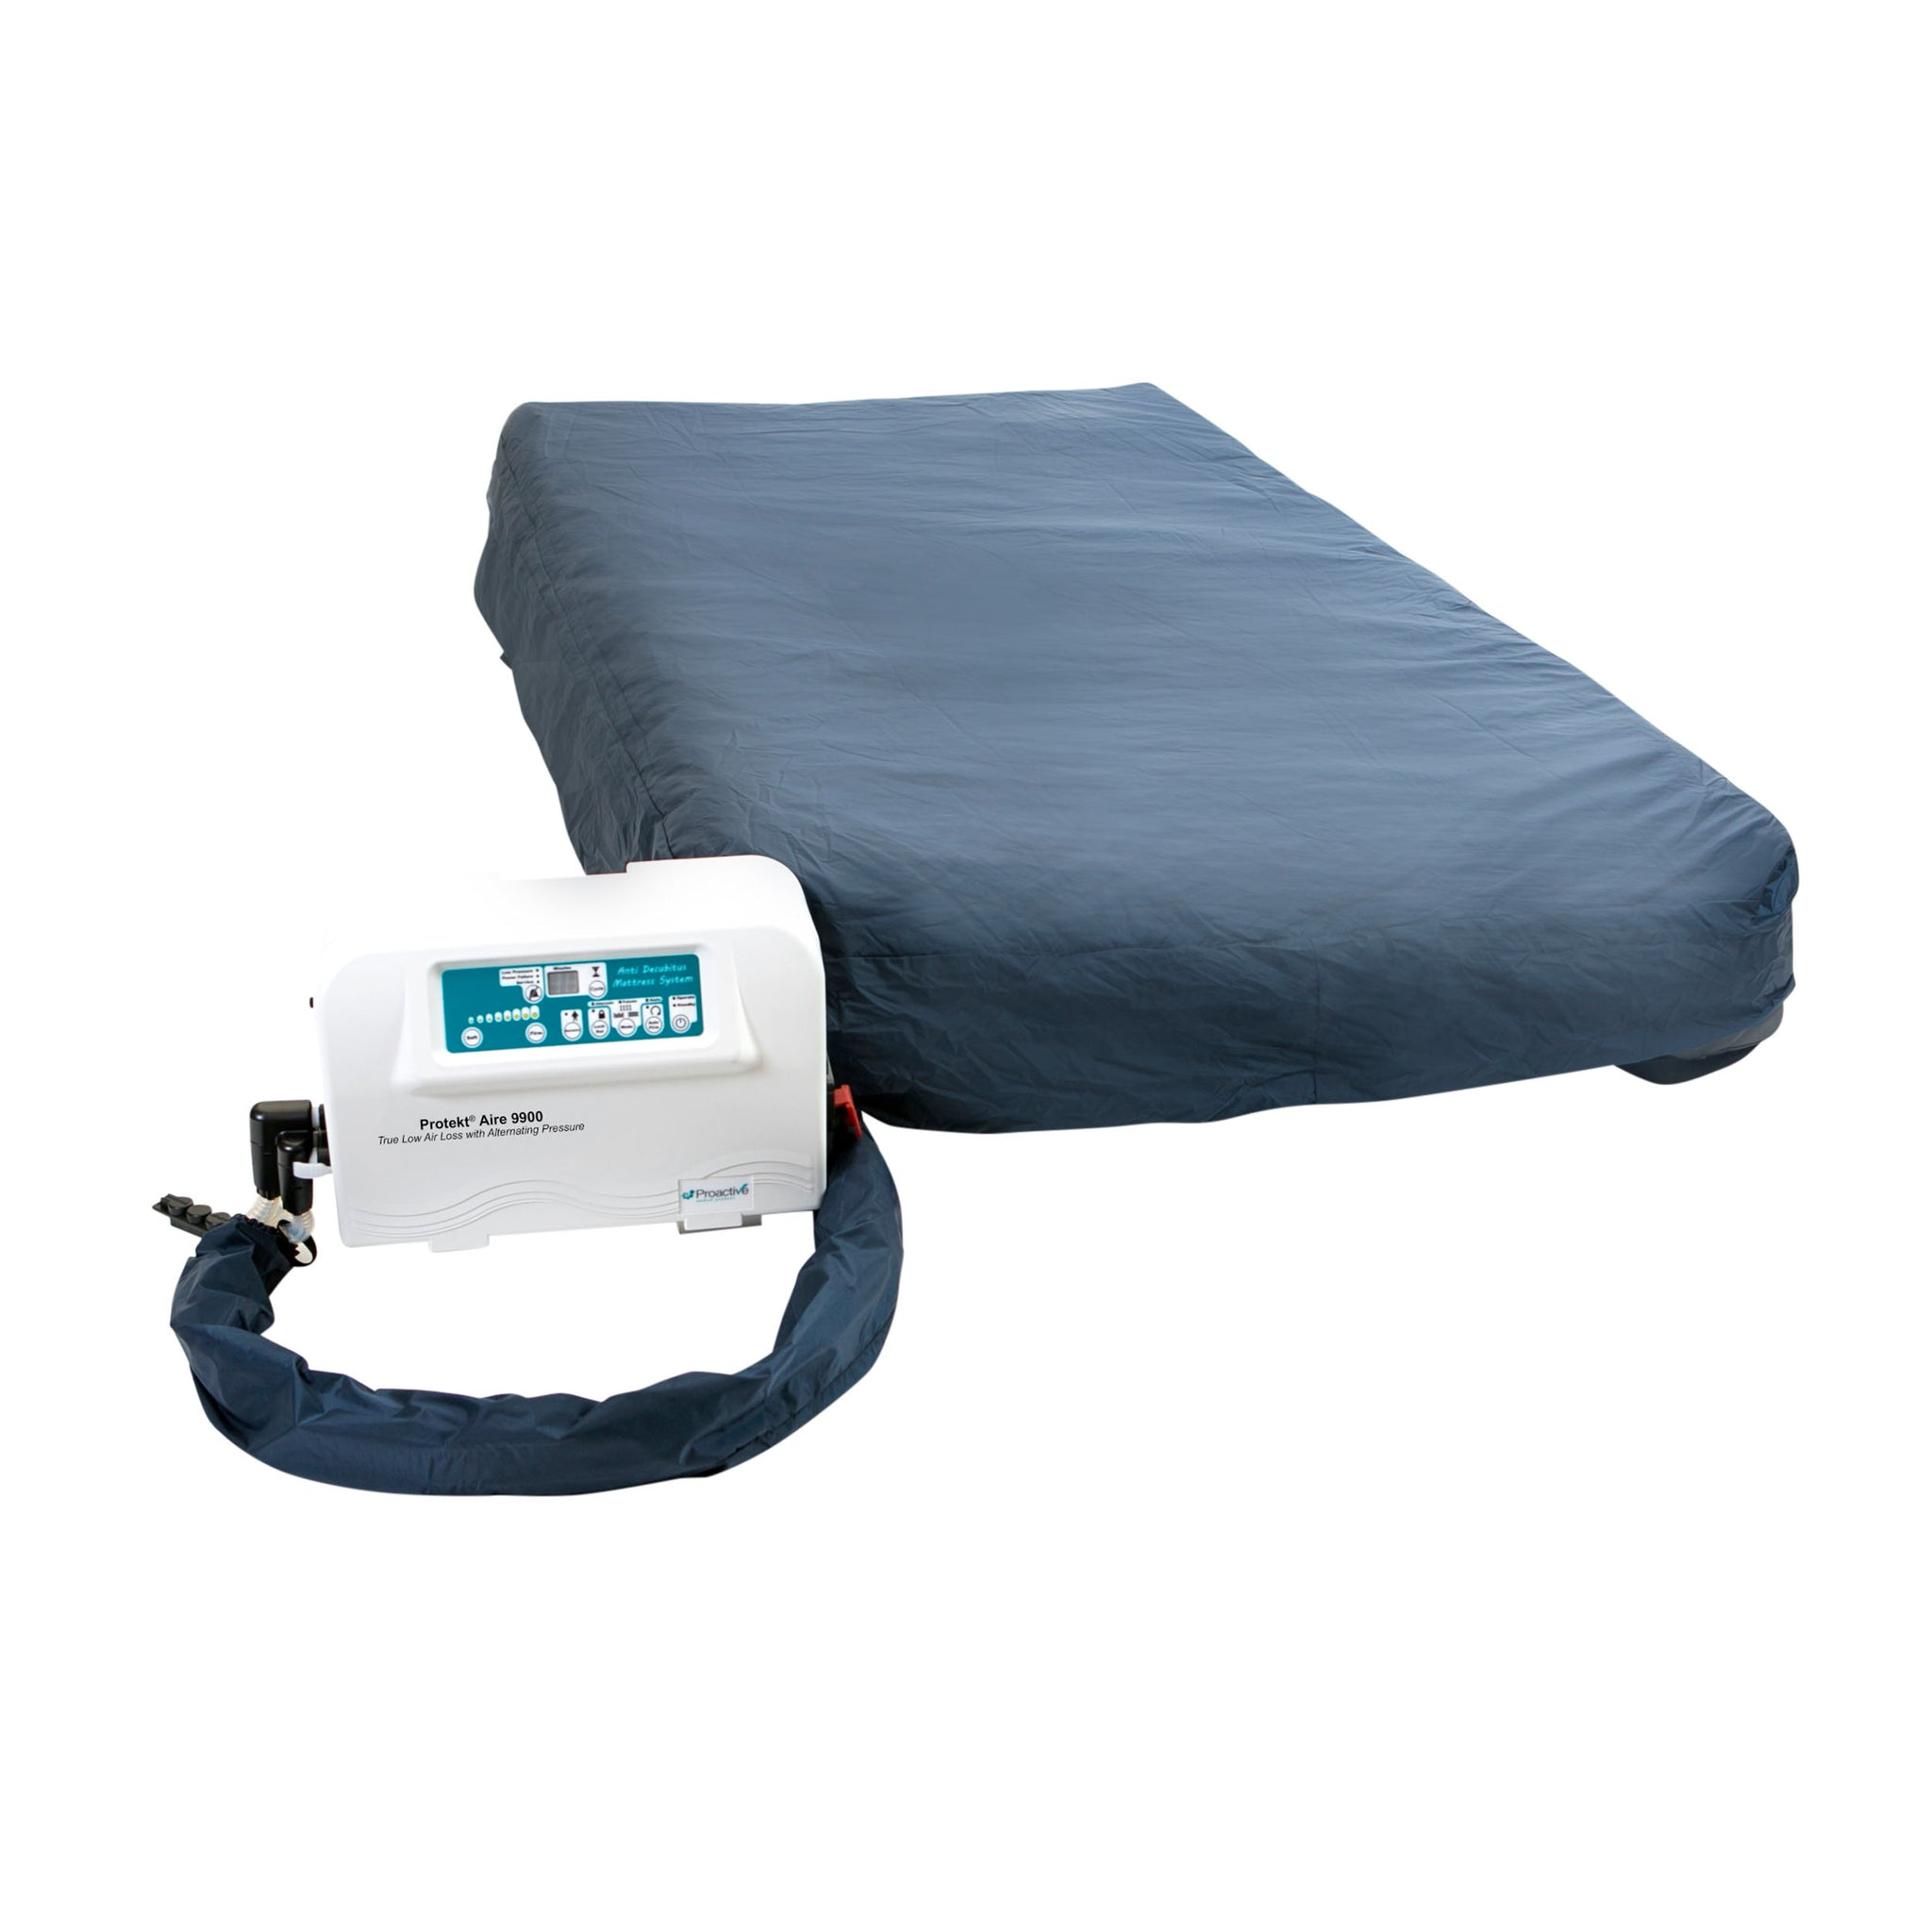 "Proactive Protekt® Aire 9900 ""True"" Low Air Loss Mattress System with Alternating Pressure and Pulsation"